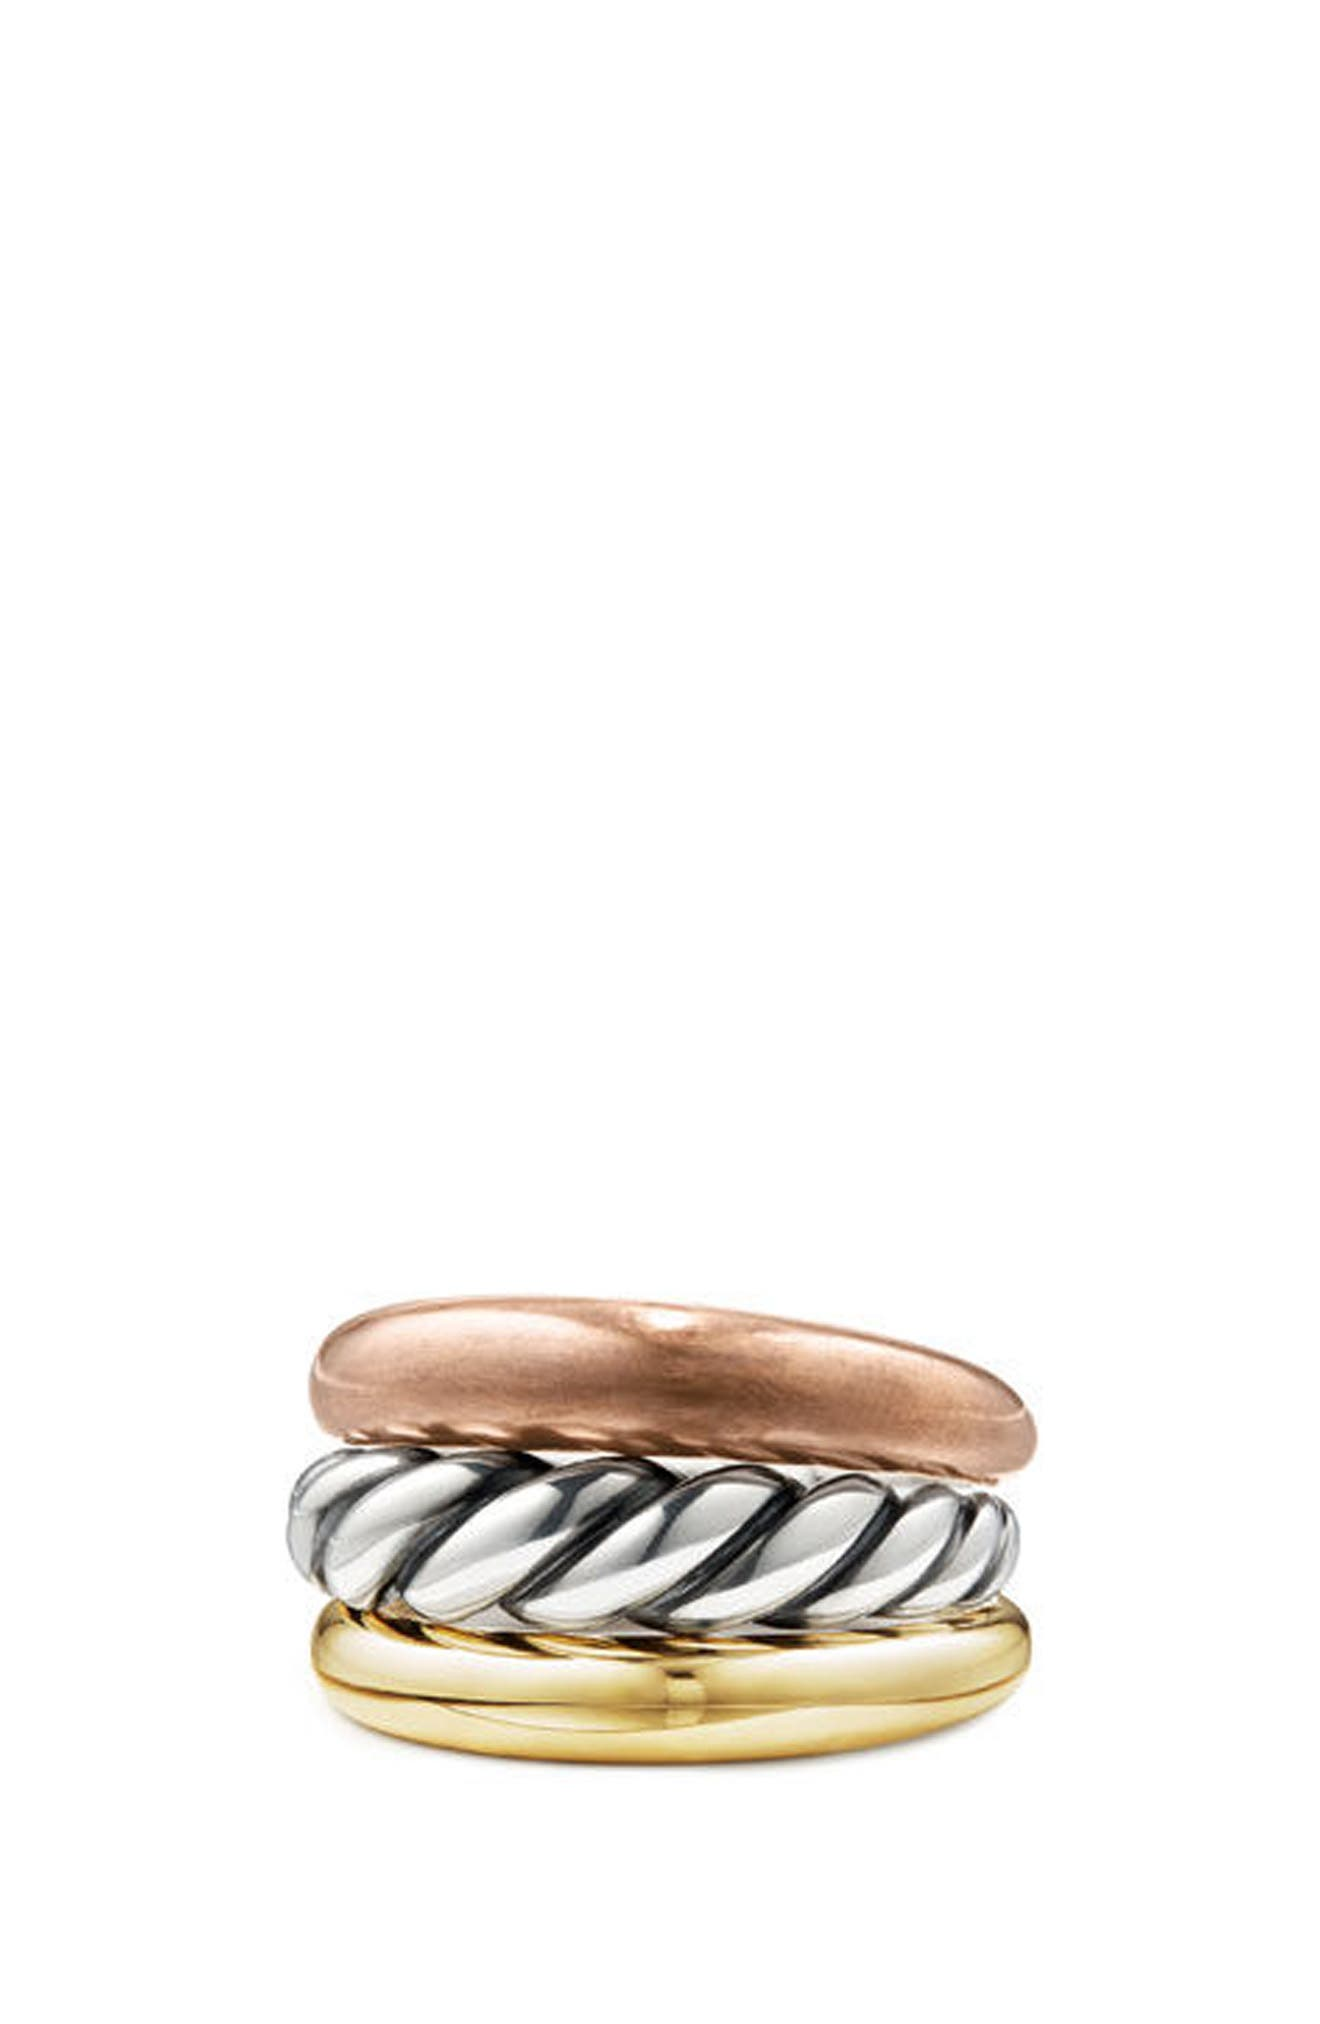 Pure Form Mixed Metal Three-Row Ring with Bronze, Silver & Brass,                             Main thumbnail 1, color,                             Silver